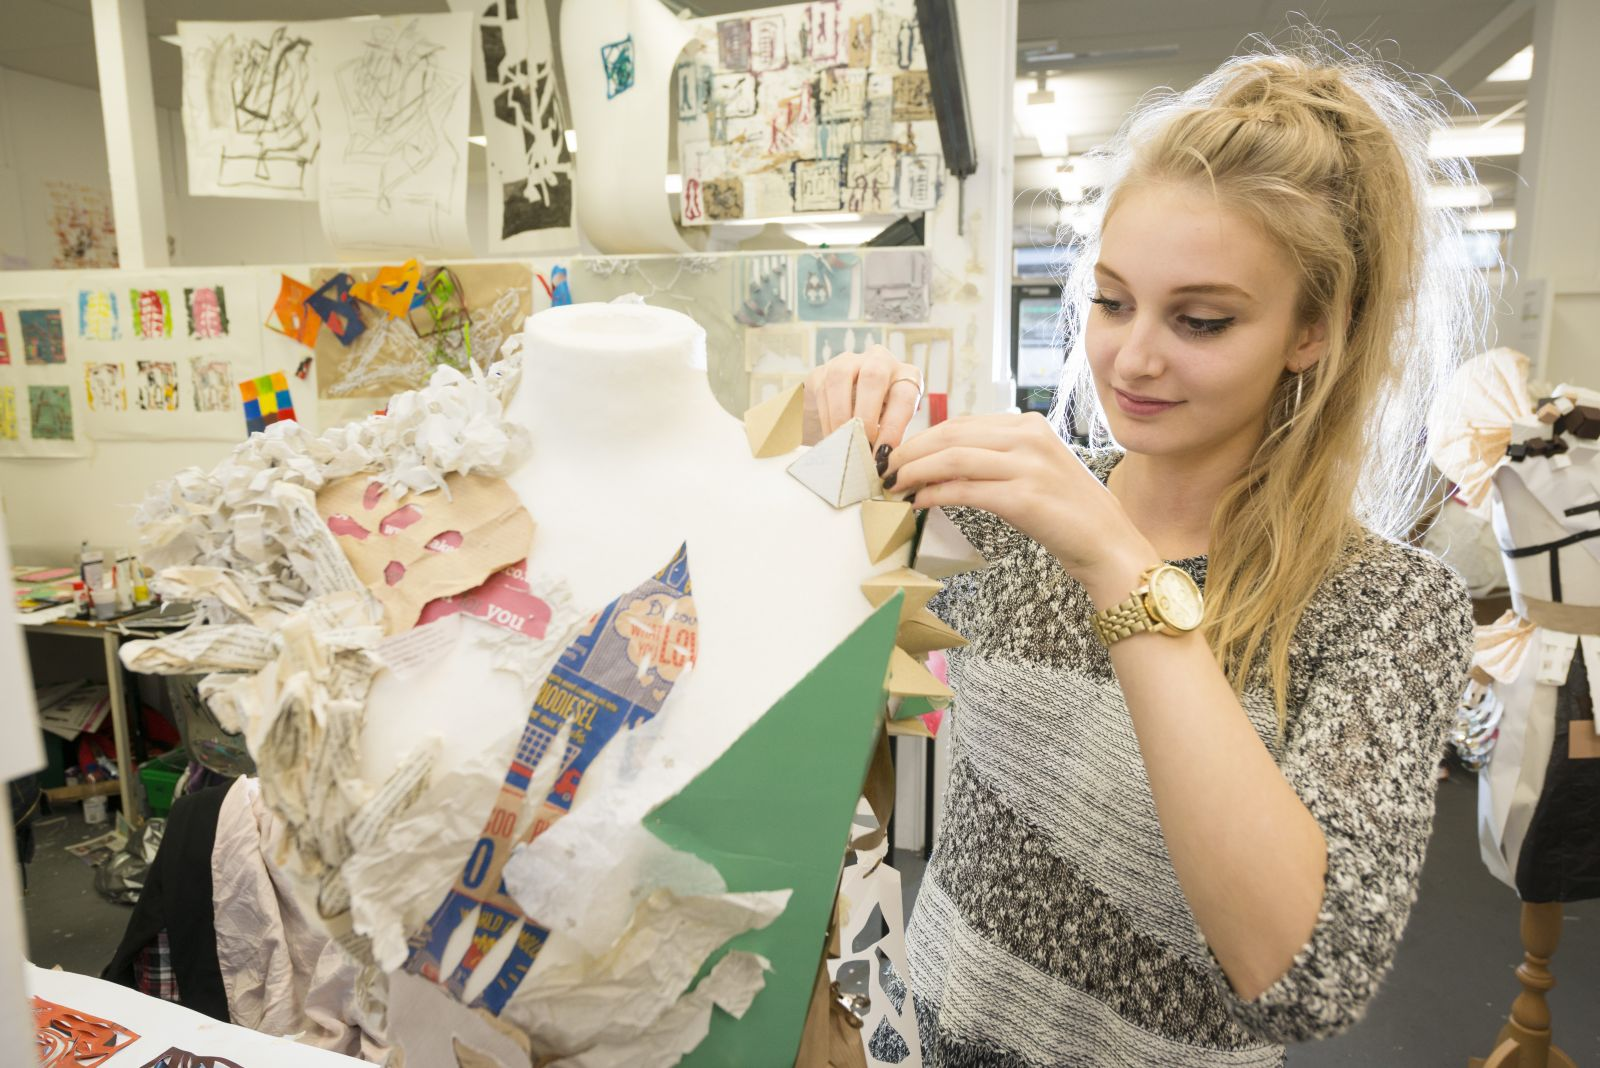 5 Top Uk Fashion Schools For International Students Student World Online